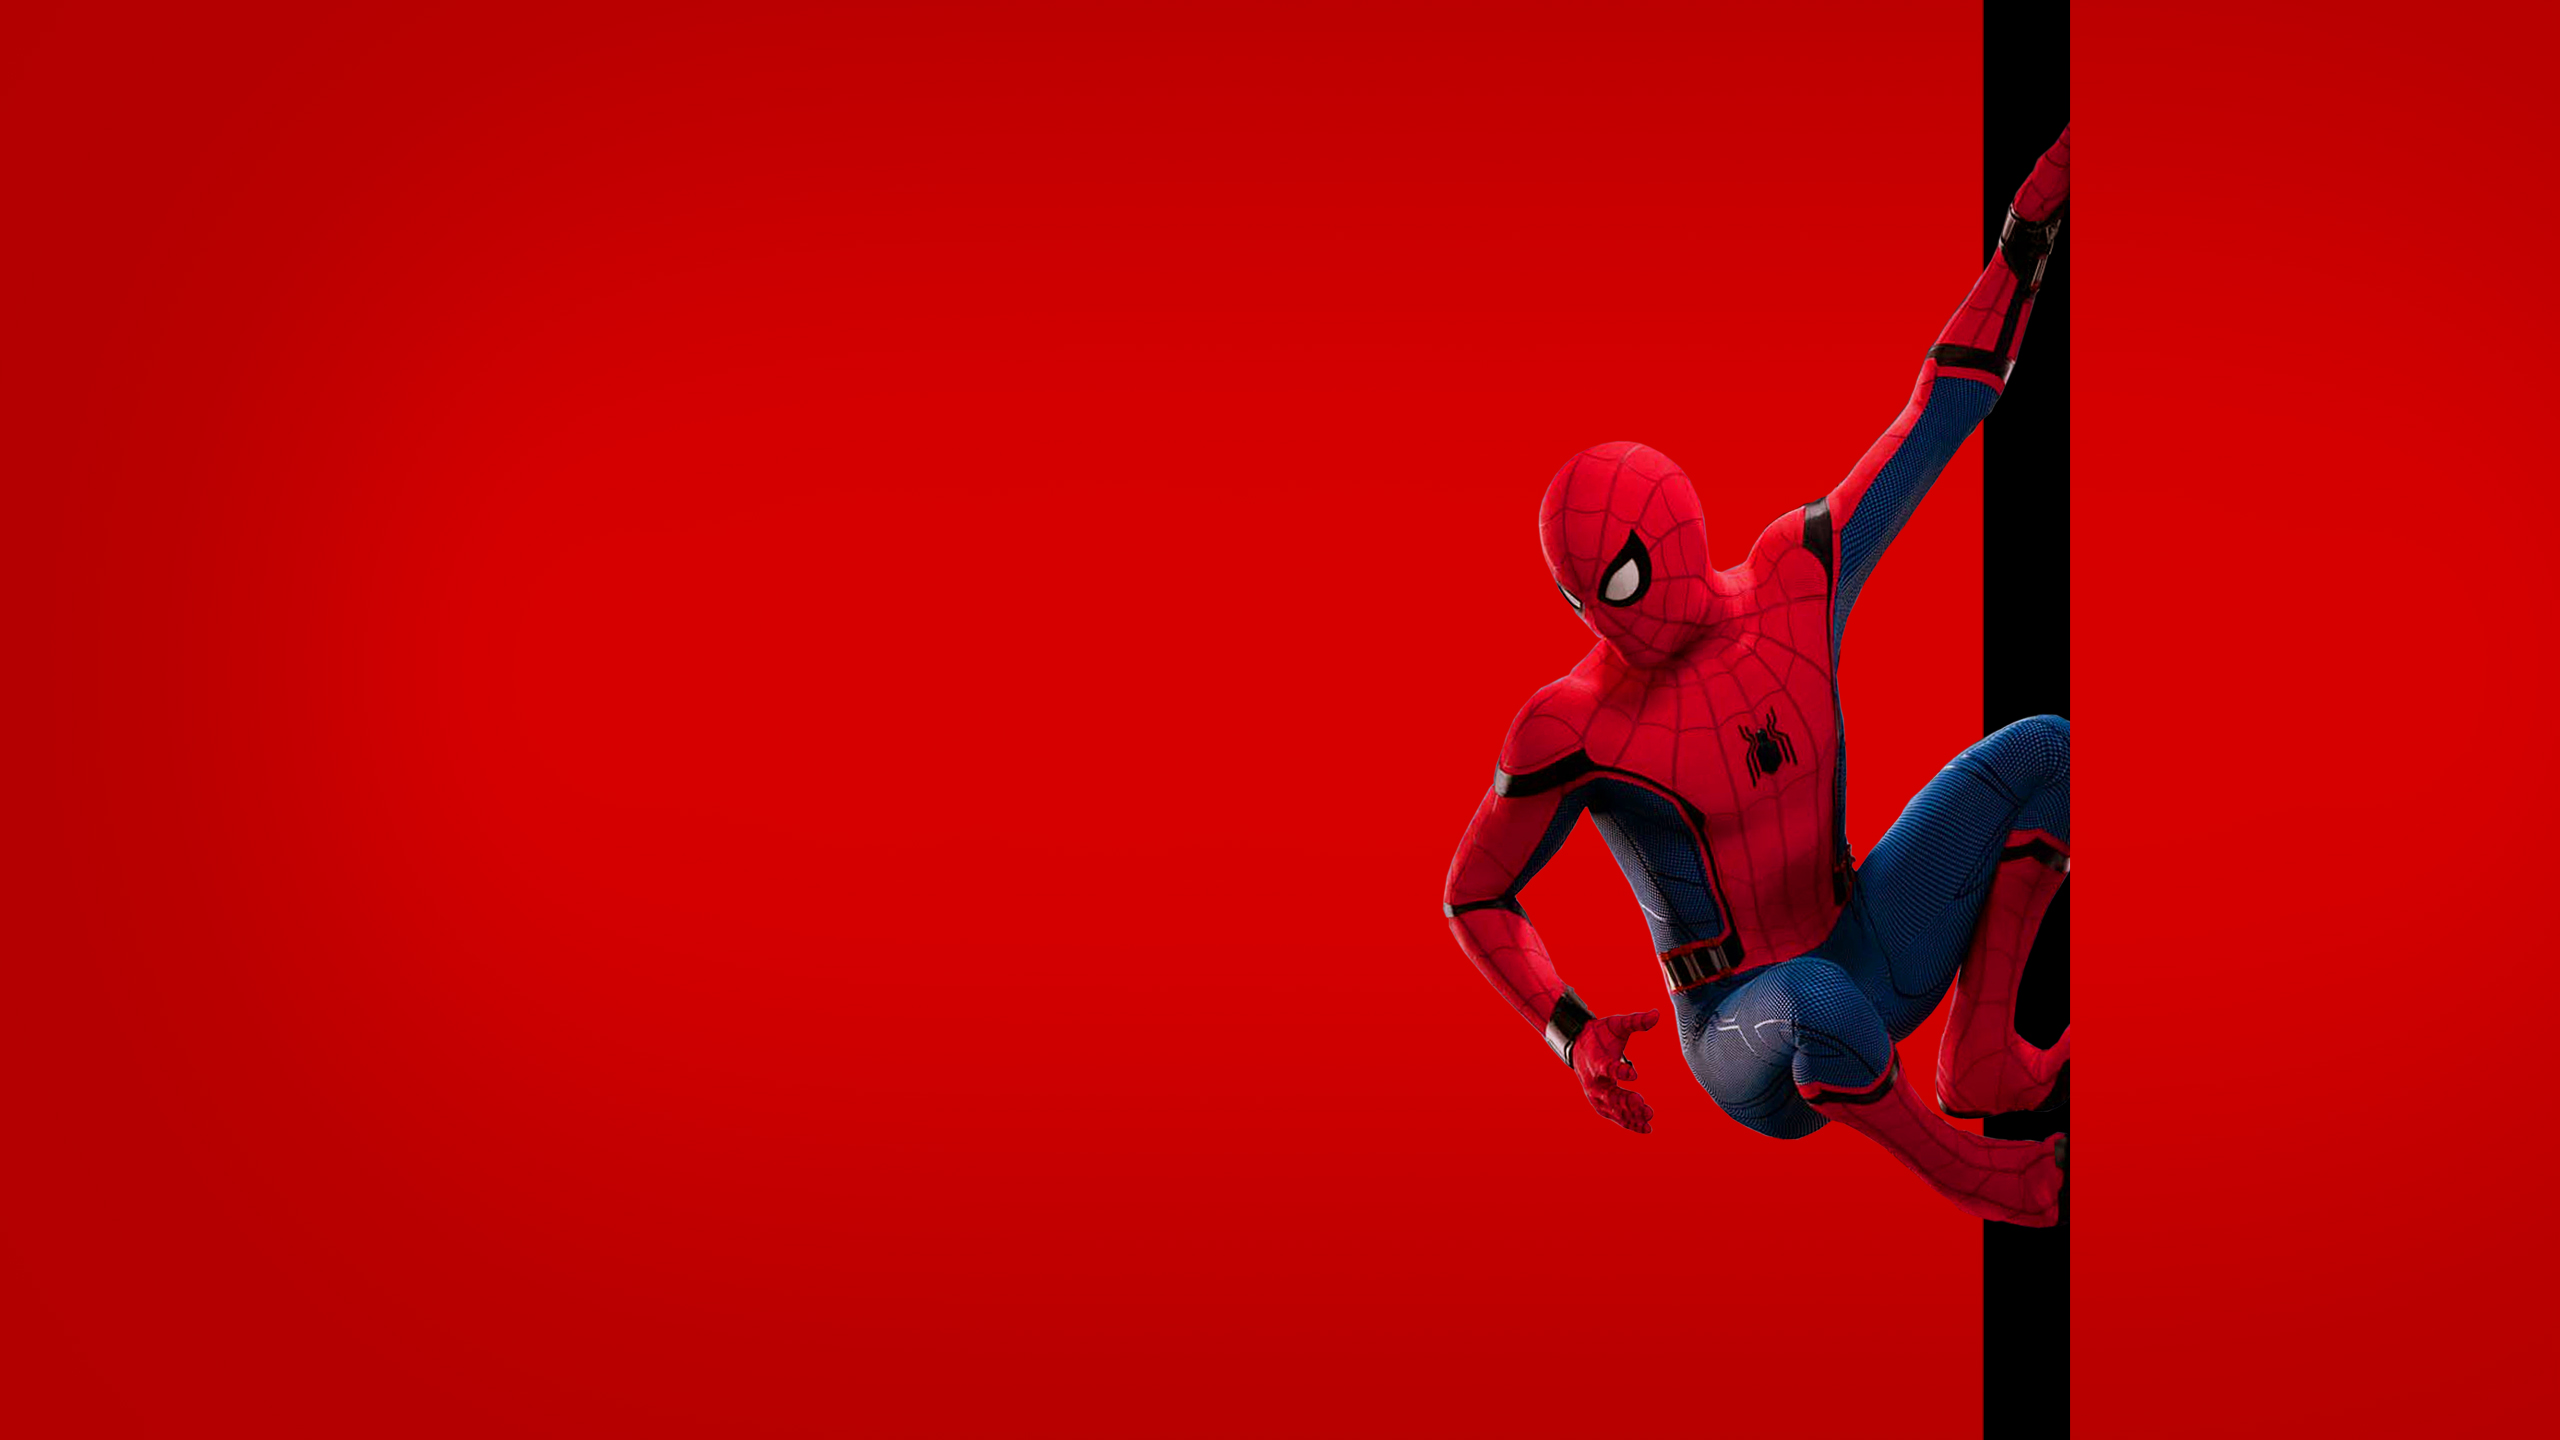 Spider Man Homecoming Wallpaper 15   2560 X 1440 stmednet 2560x1440